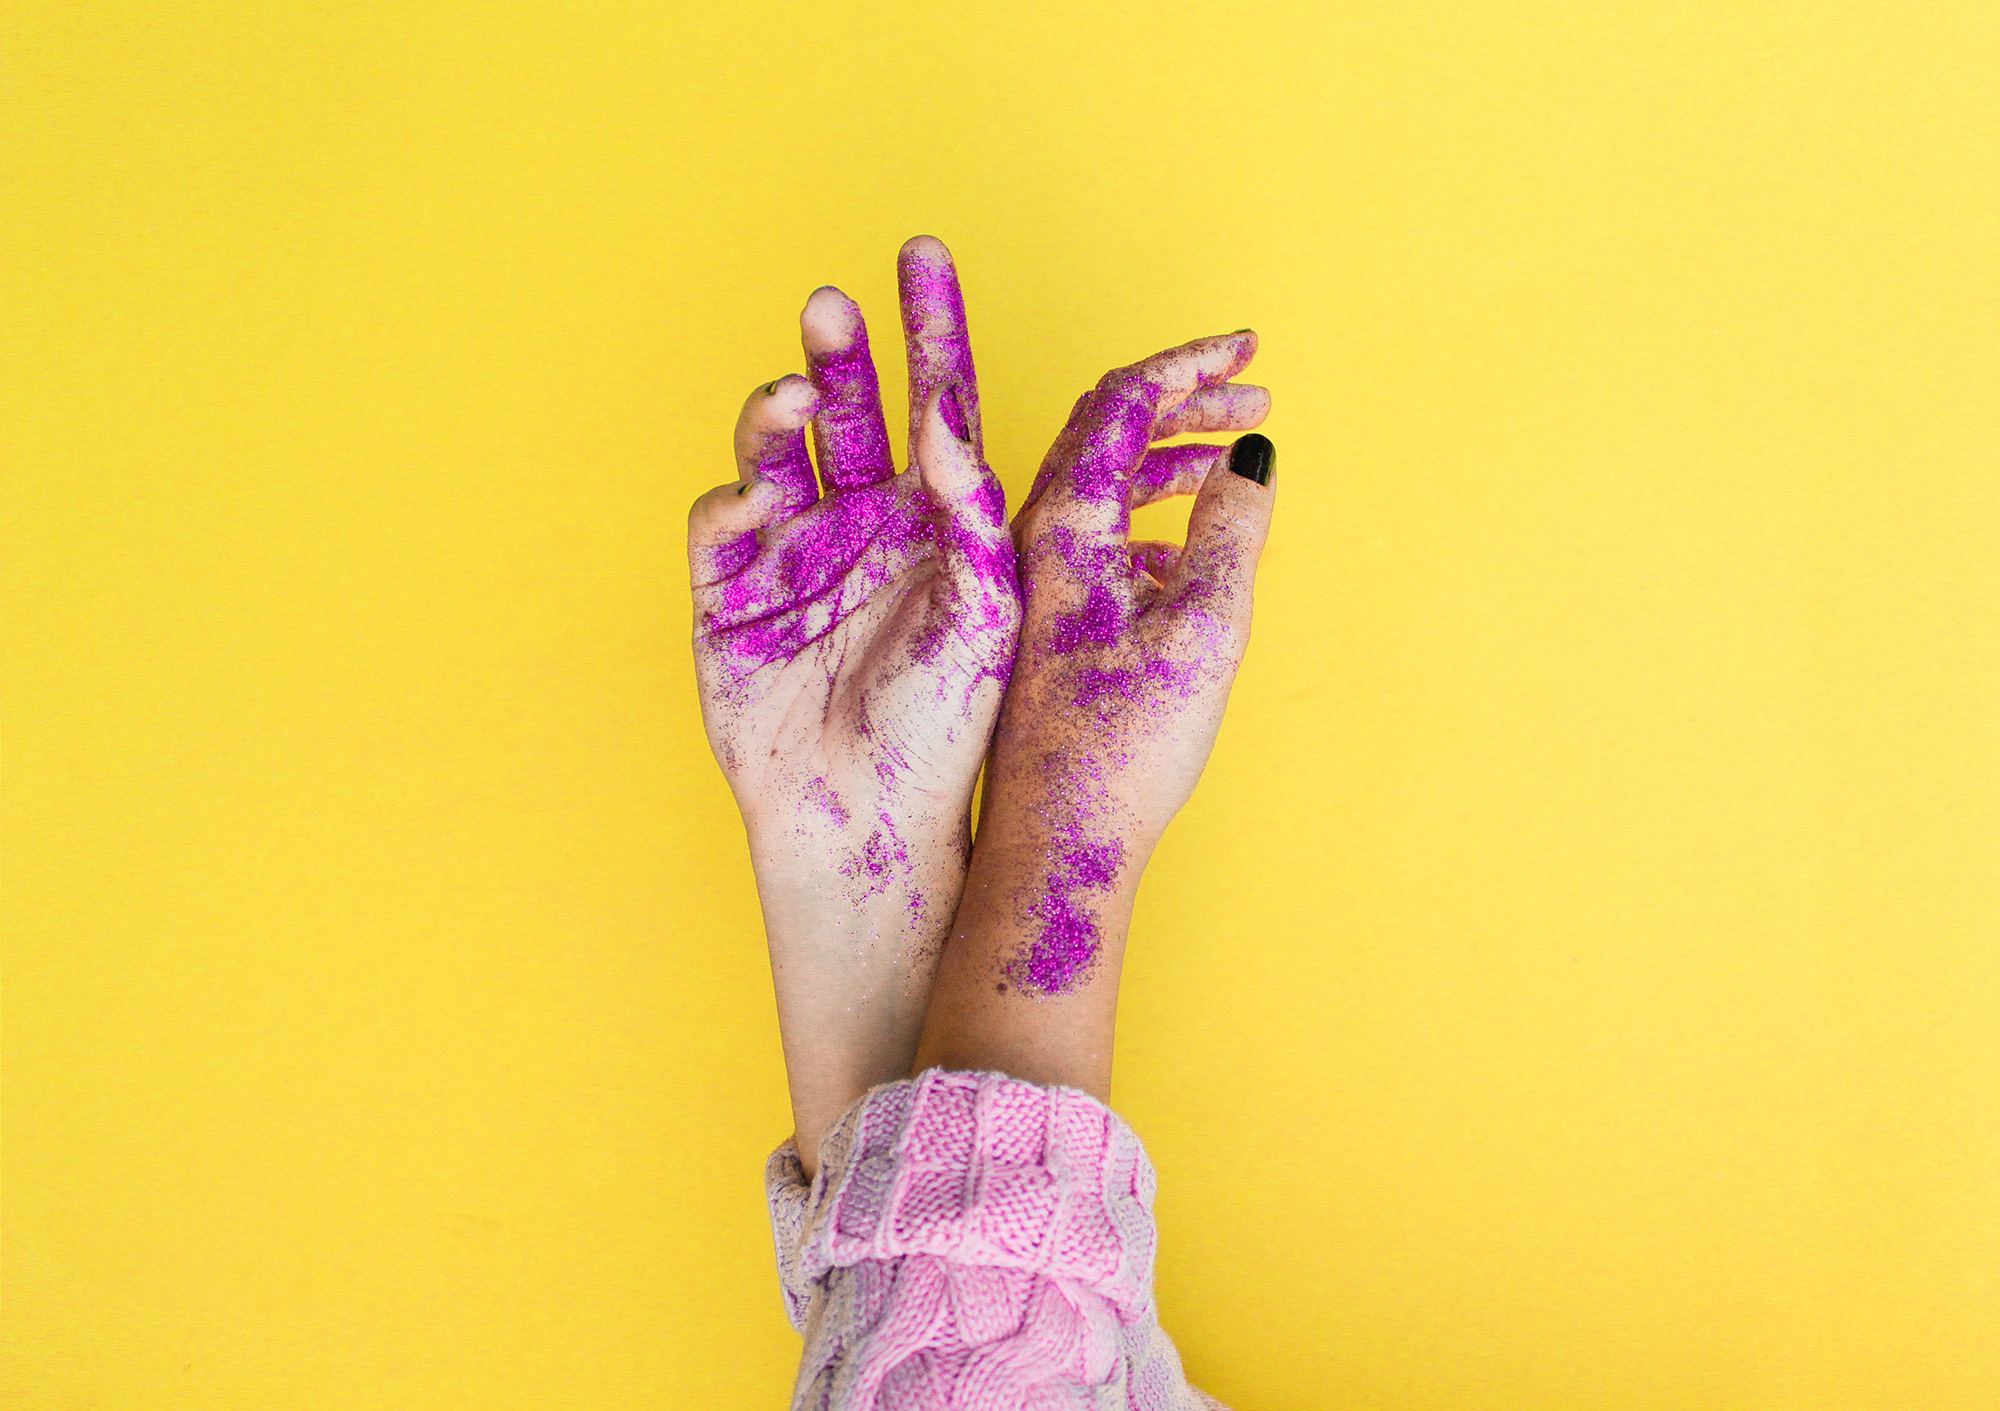 A pair of hands covered in purple glitter.